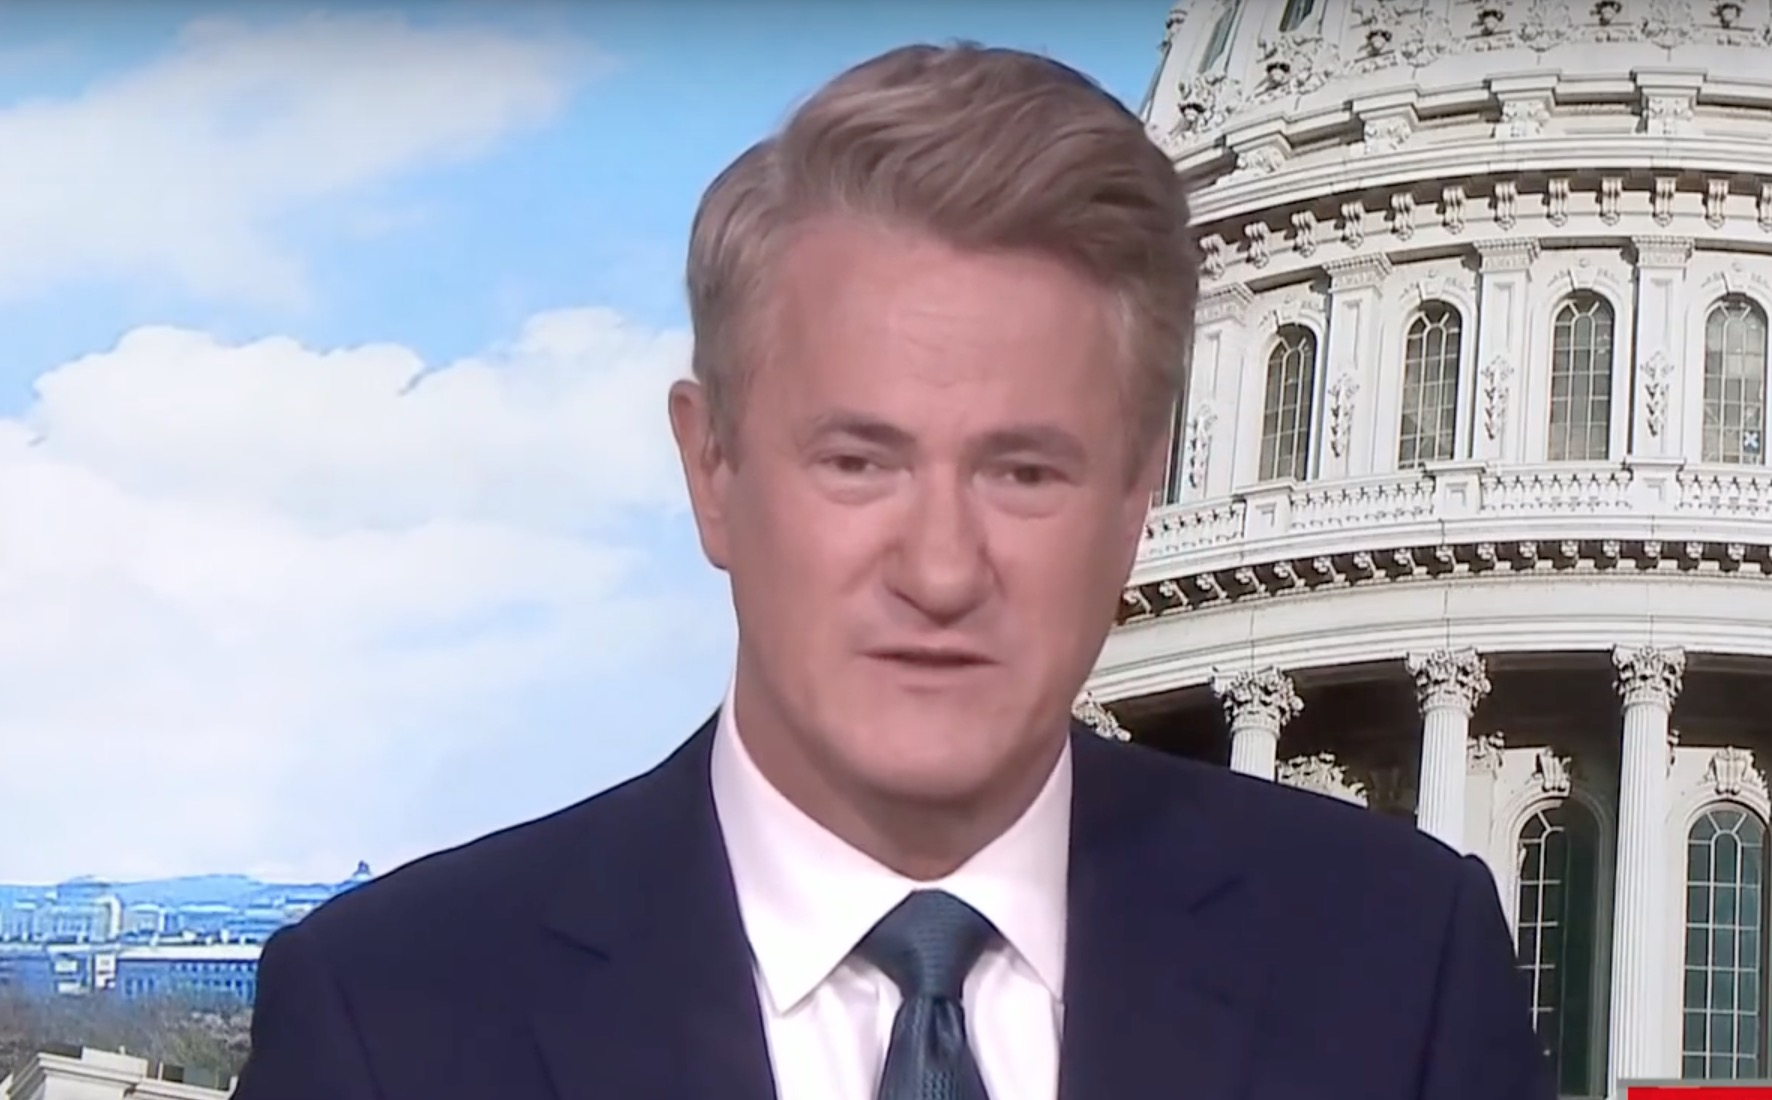 Joe Scarborough Goes Off After Being Called Out for 'Reckless Speculation' on Epstein: 'Get Some Fresh Air'